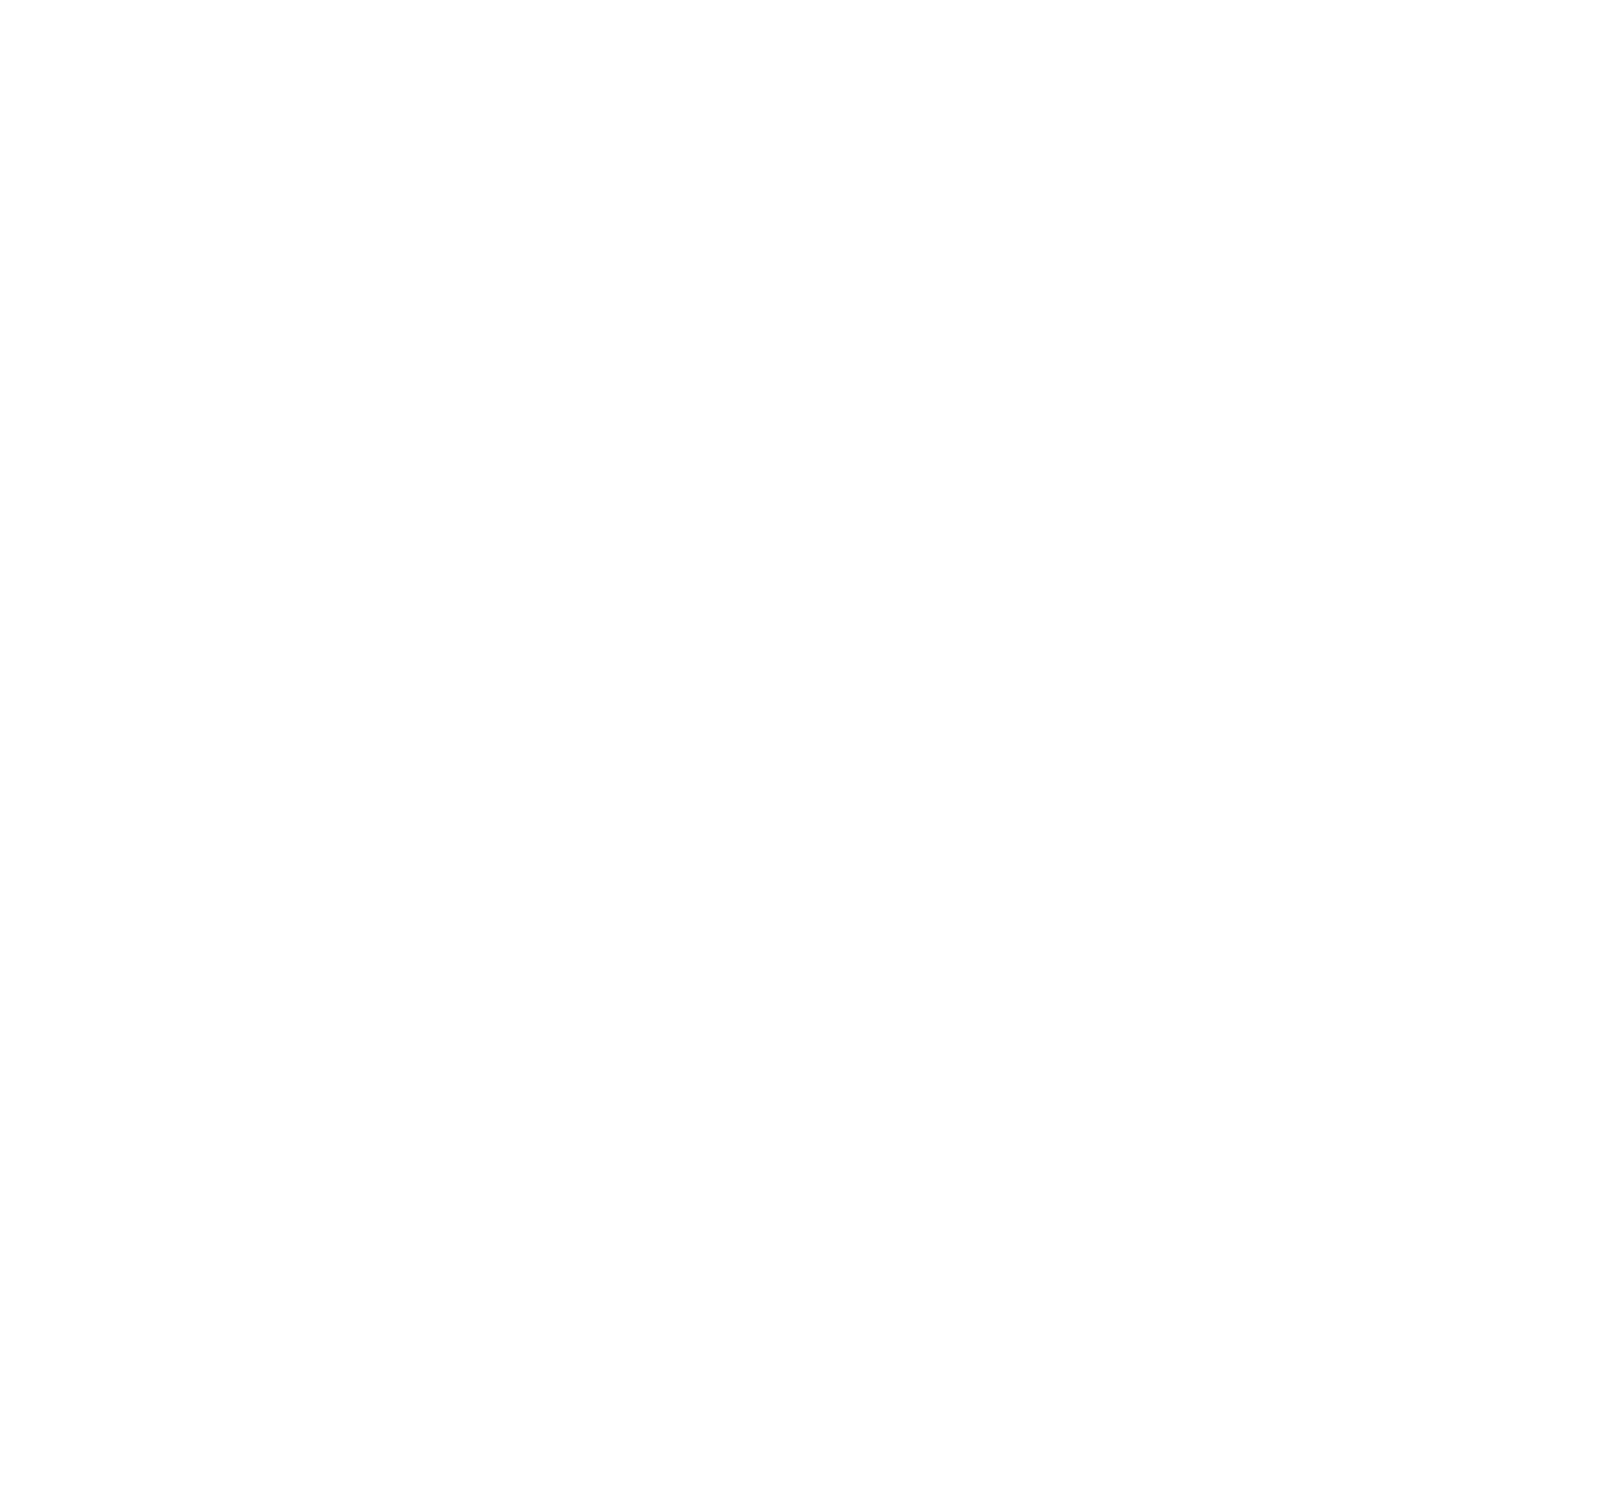 2bsphotography.com